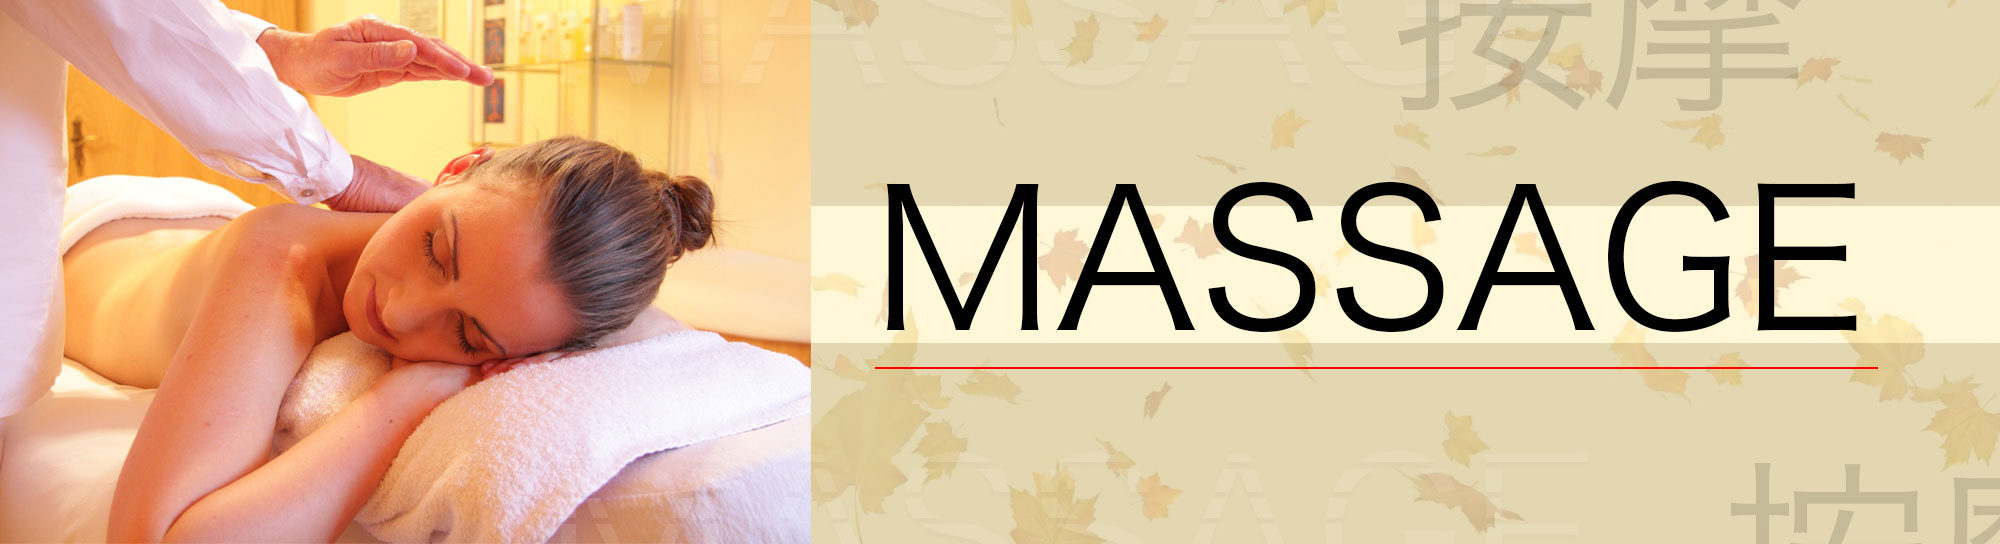 massageBanner-1.jpg